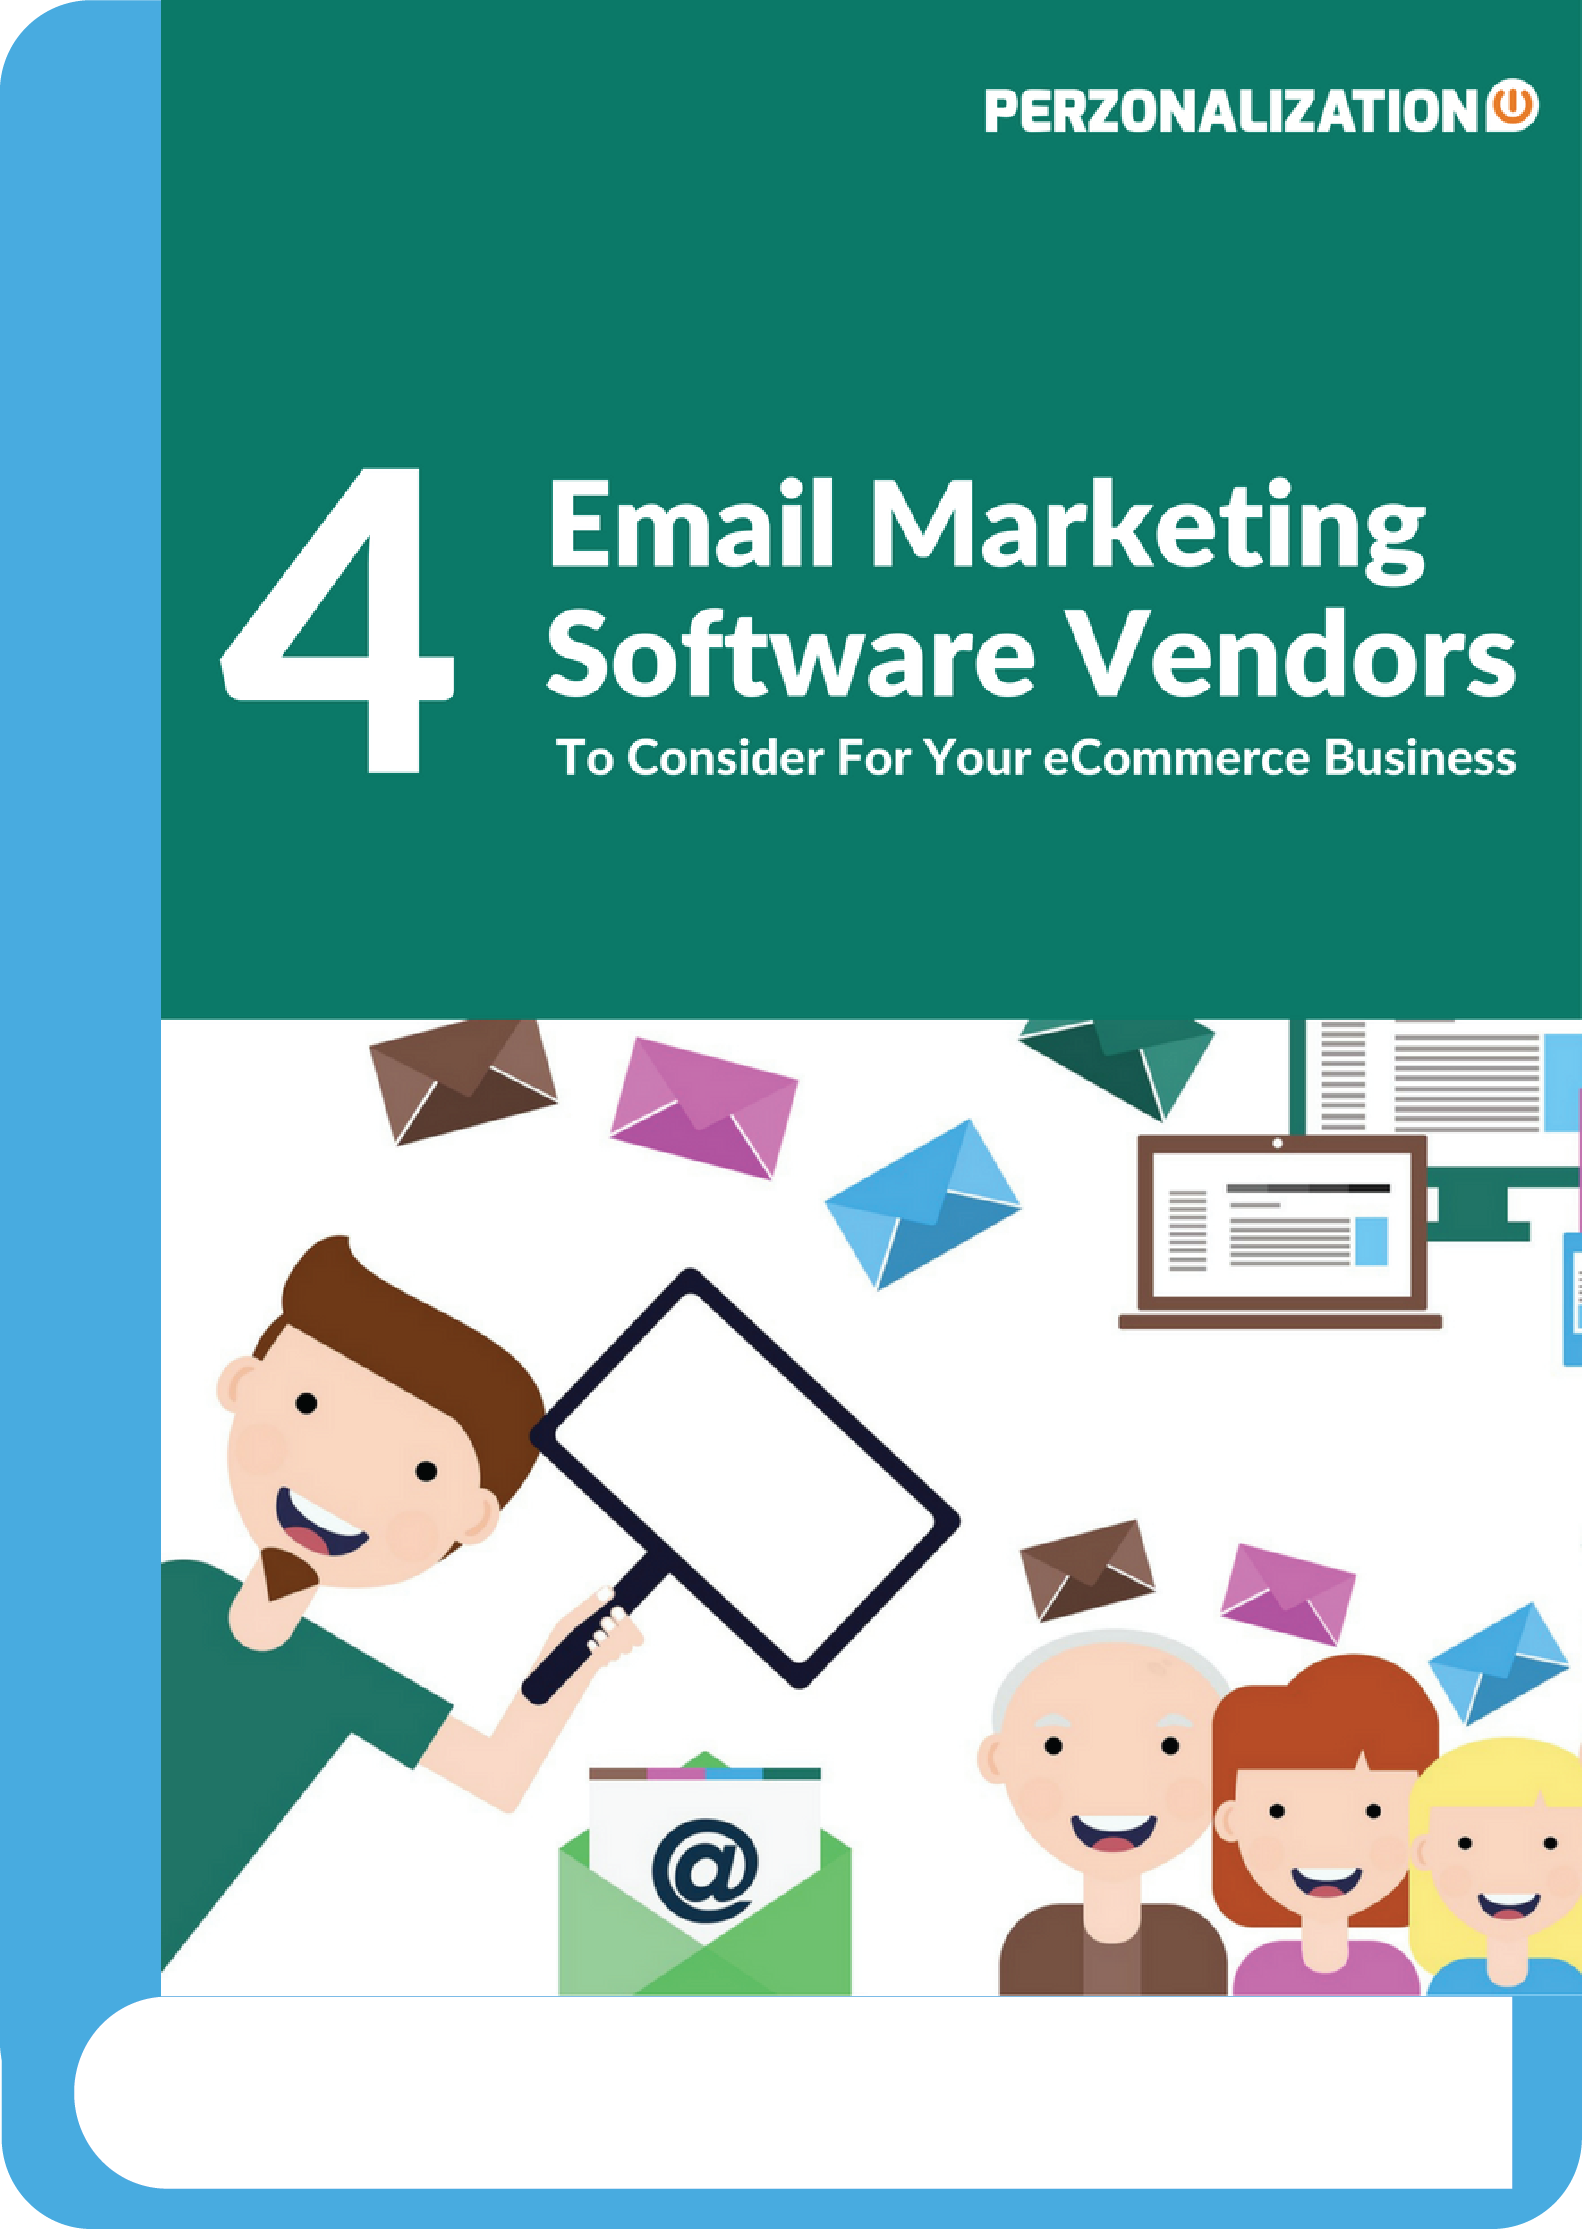 There are quite a few companies which are doing a fabulous job in helping marketers by providing email marketing software options. Read more in this free eBook to discover!